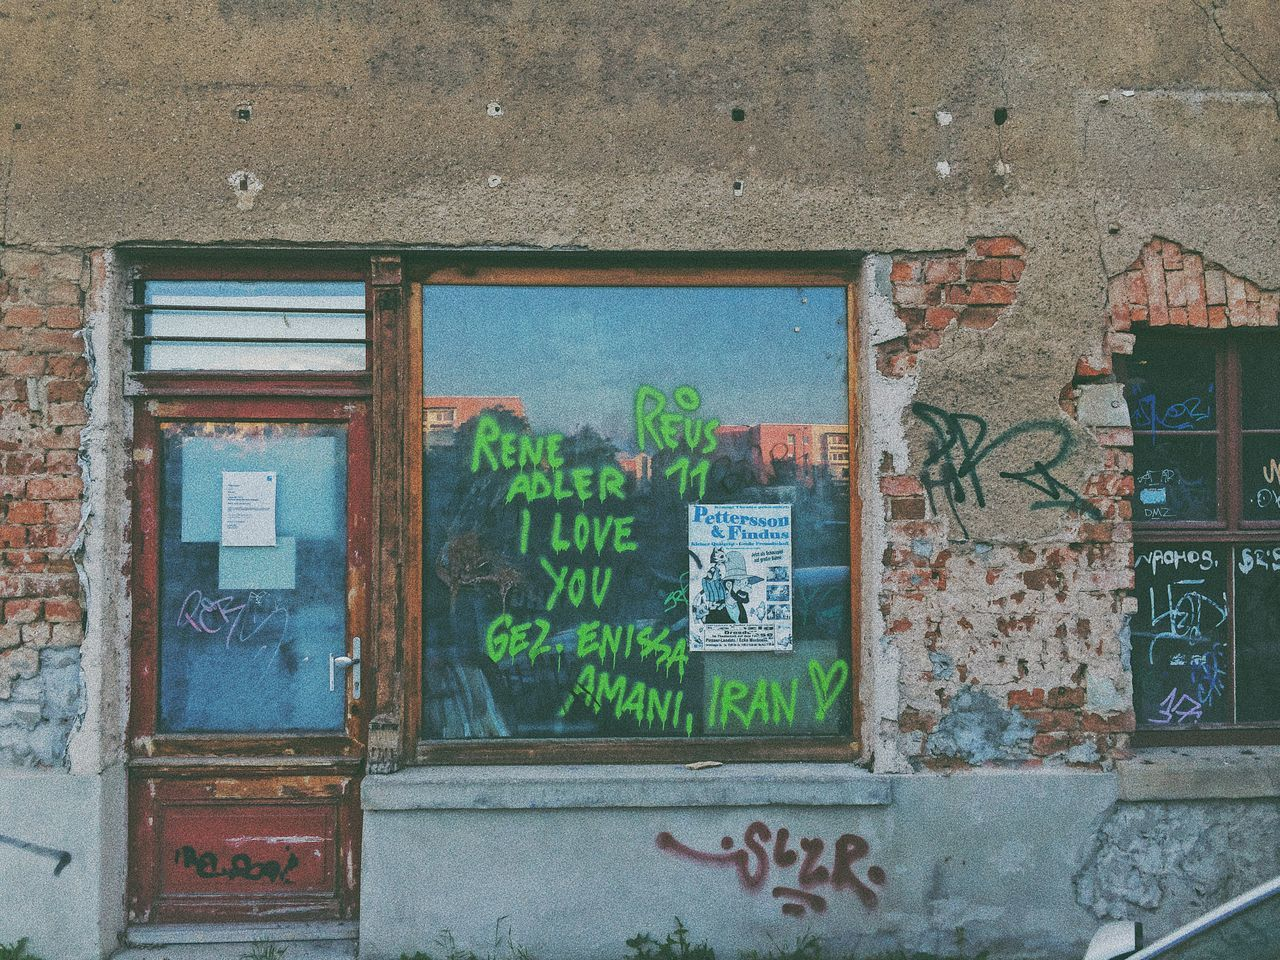 architecture, built structure, window, text, abandoned, graffiti, no people, weathered, day, building exterior, multi colored, outdoors, close-up